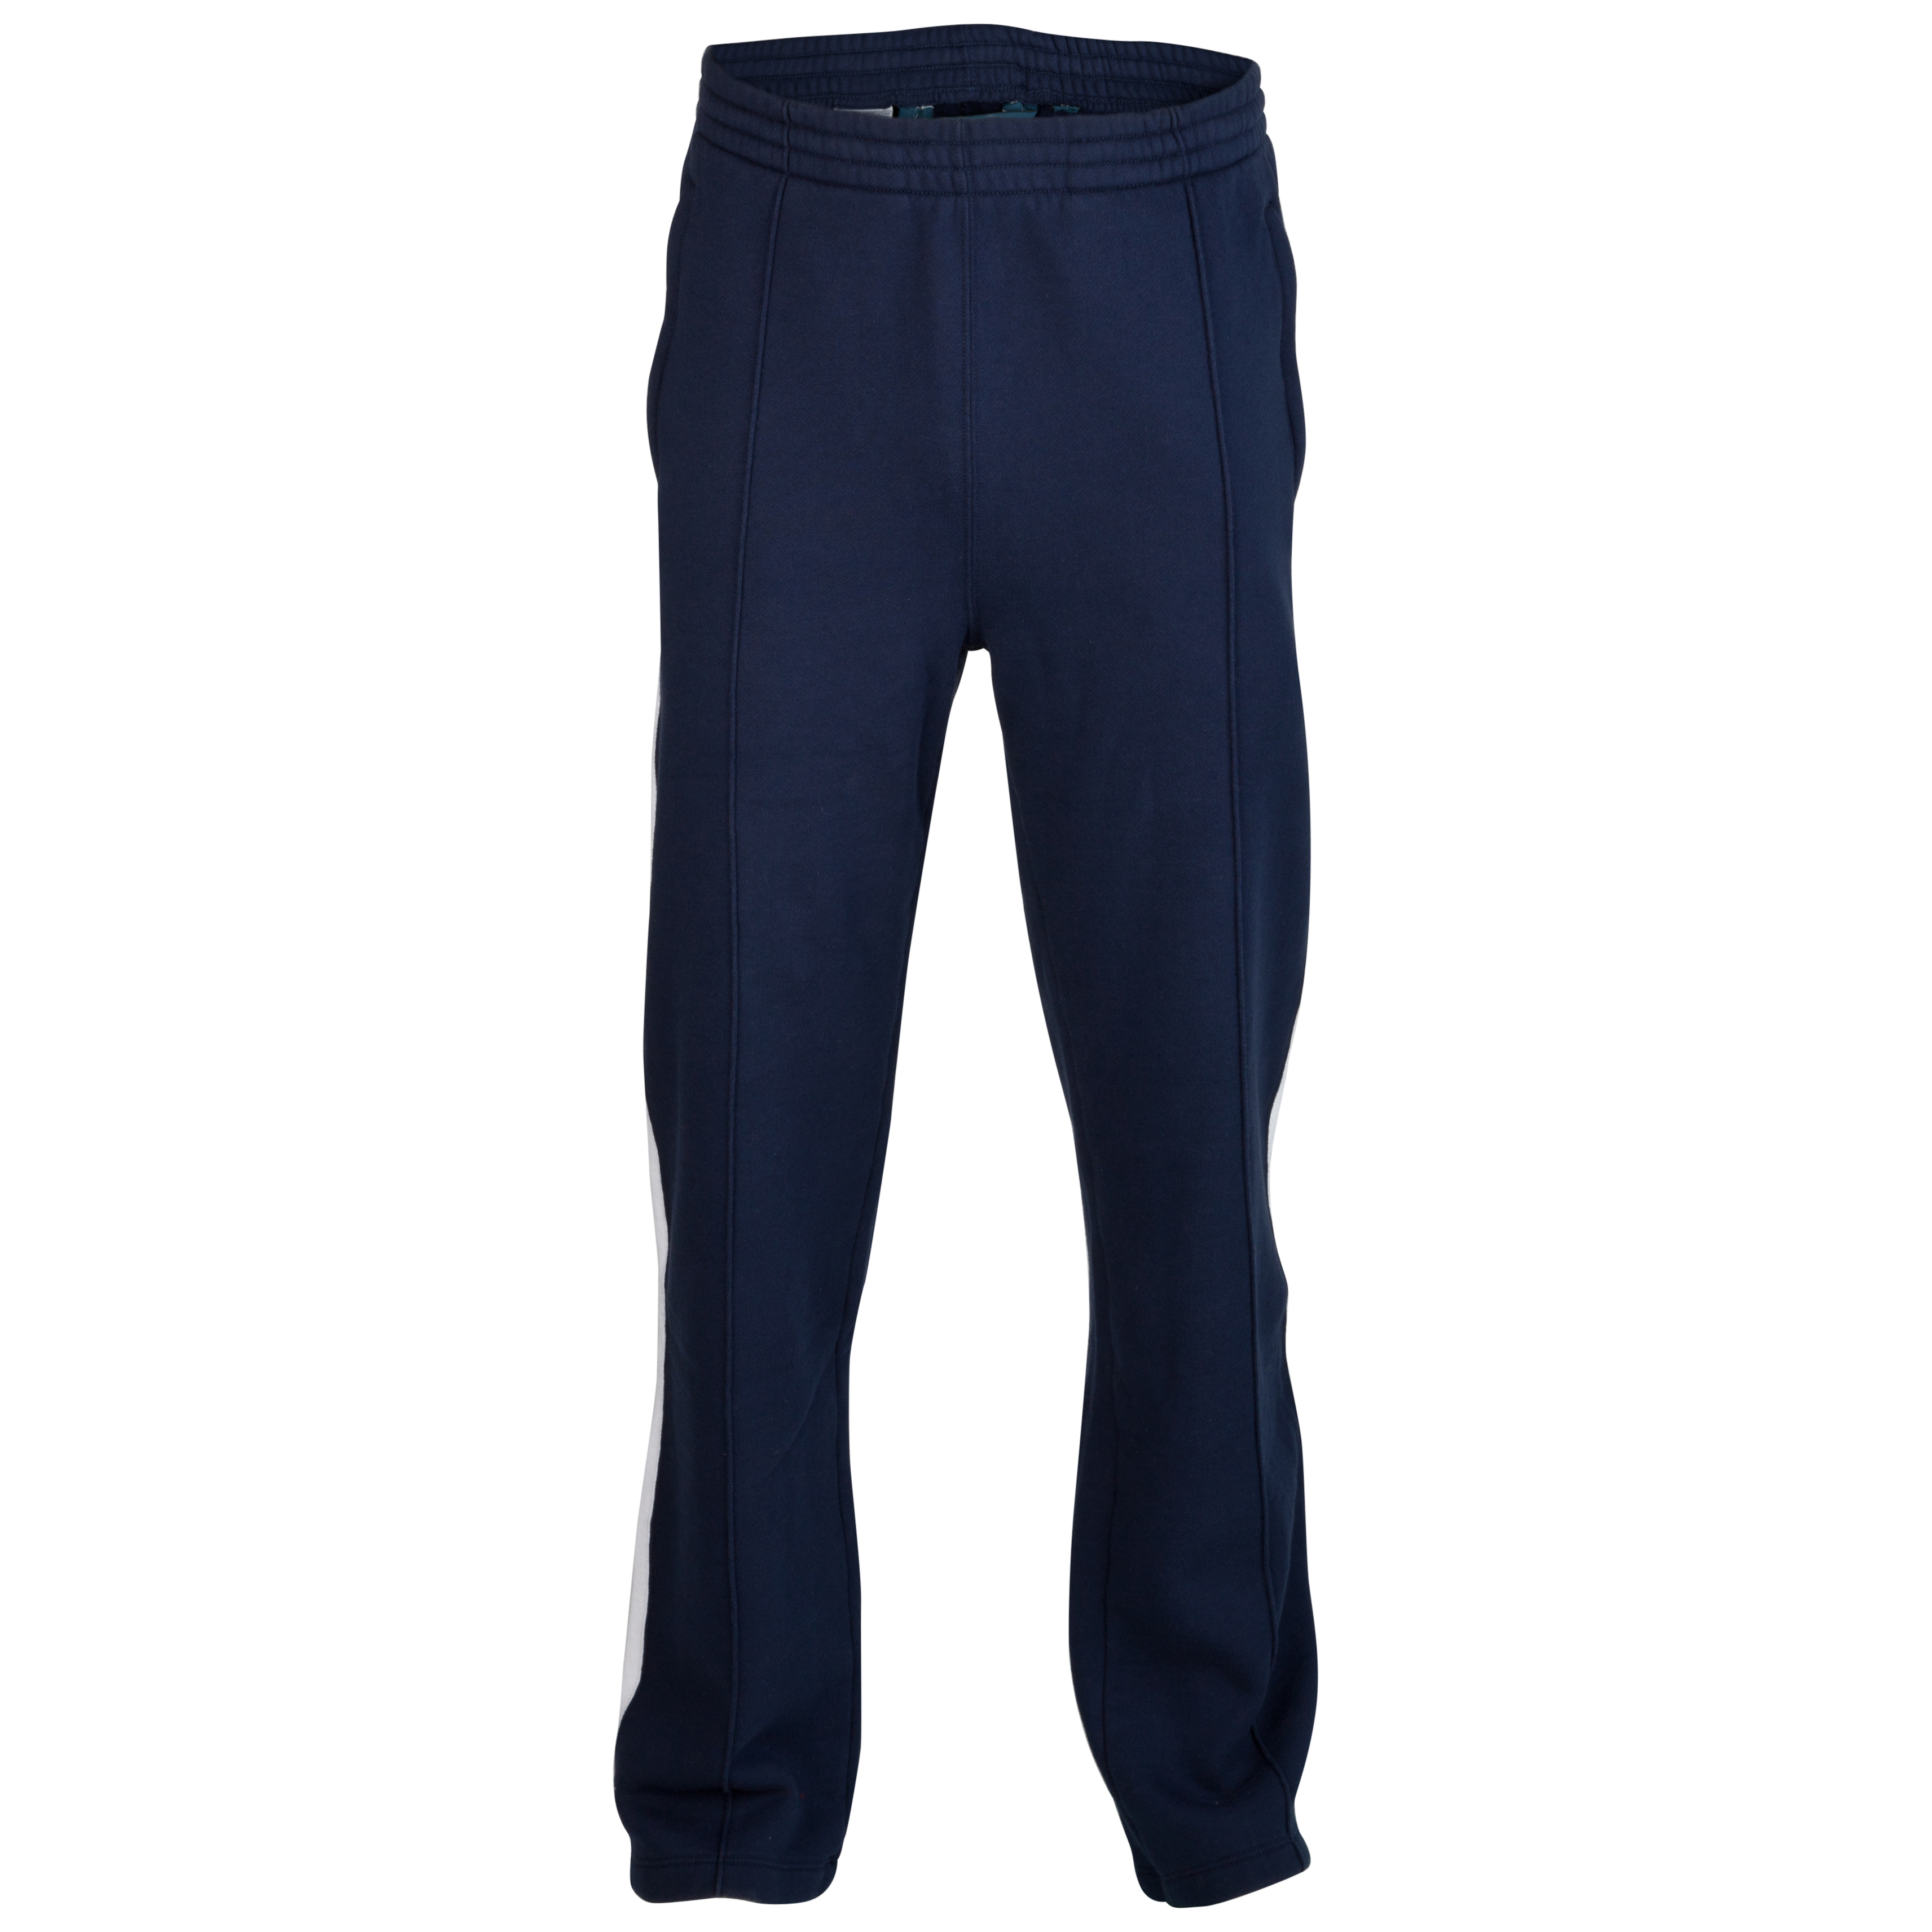 Polo Ralph Lauren Wimbledon Pull on Athletic Fleece Pant - French Navy